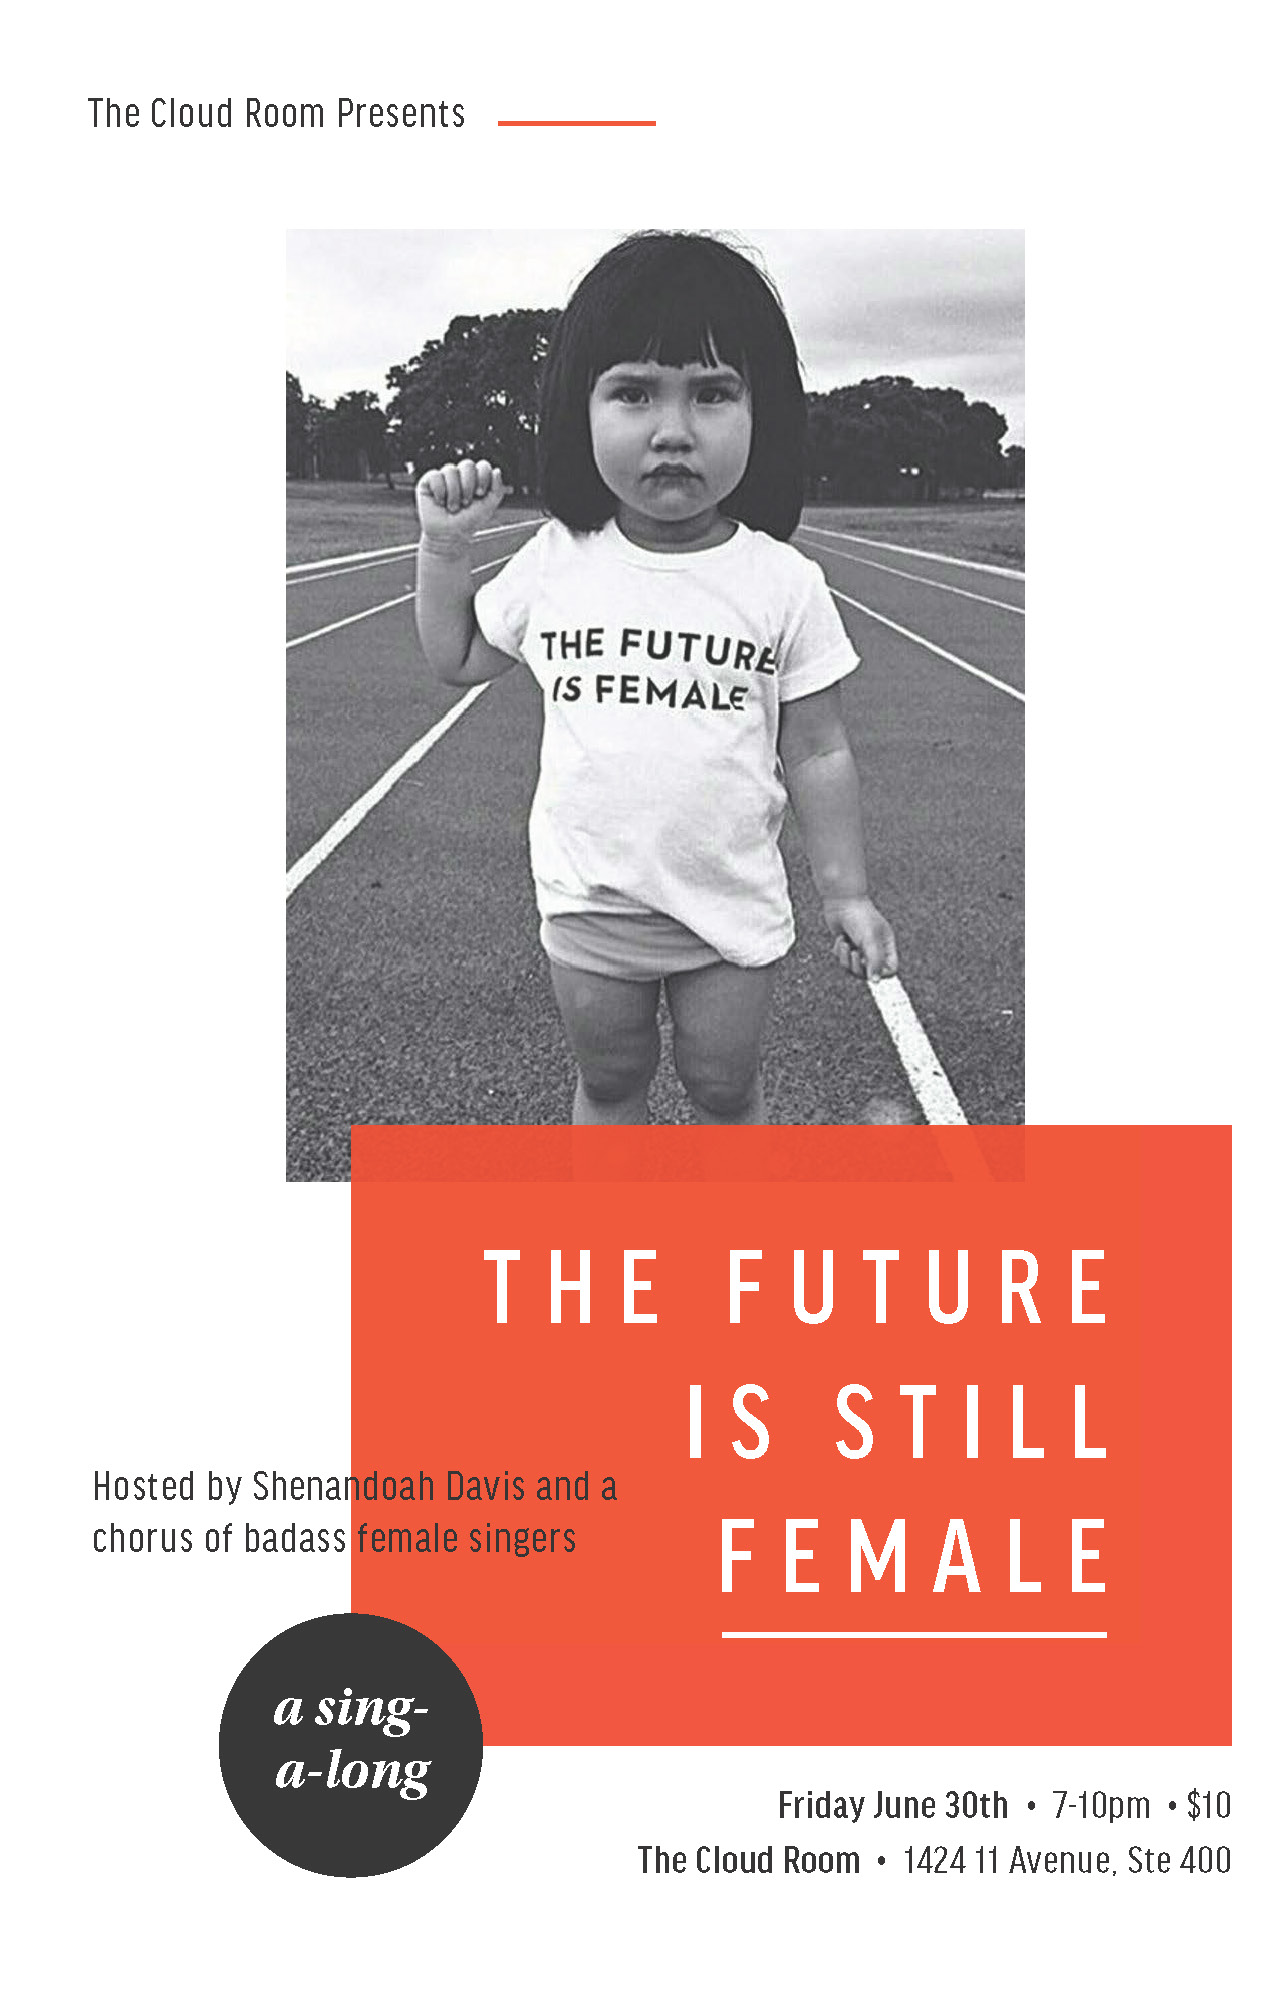 The Future is Still Female - A Sing-A-Long   Hosted by Shenandoah Davis and her friends Molly Sides, Alex Niedzialkowski and a chorus of magnificent women belting out our favorite songs by iconic female singers.